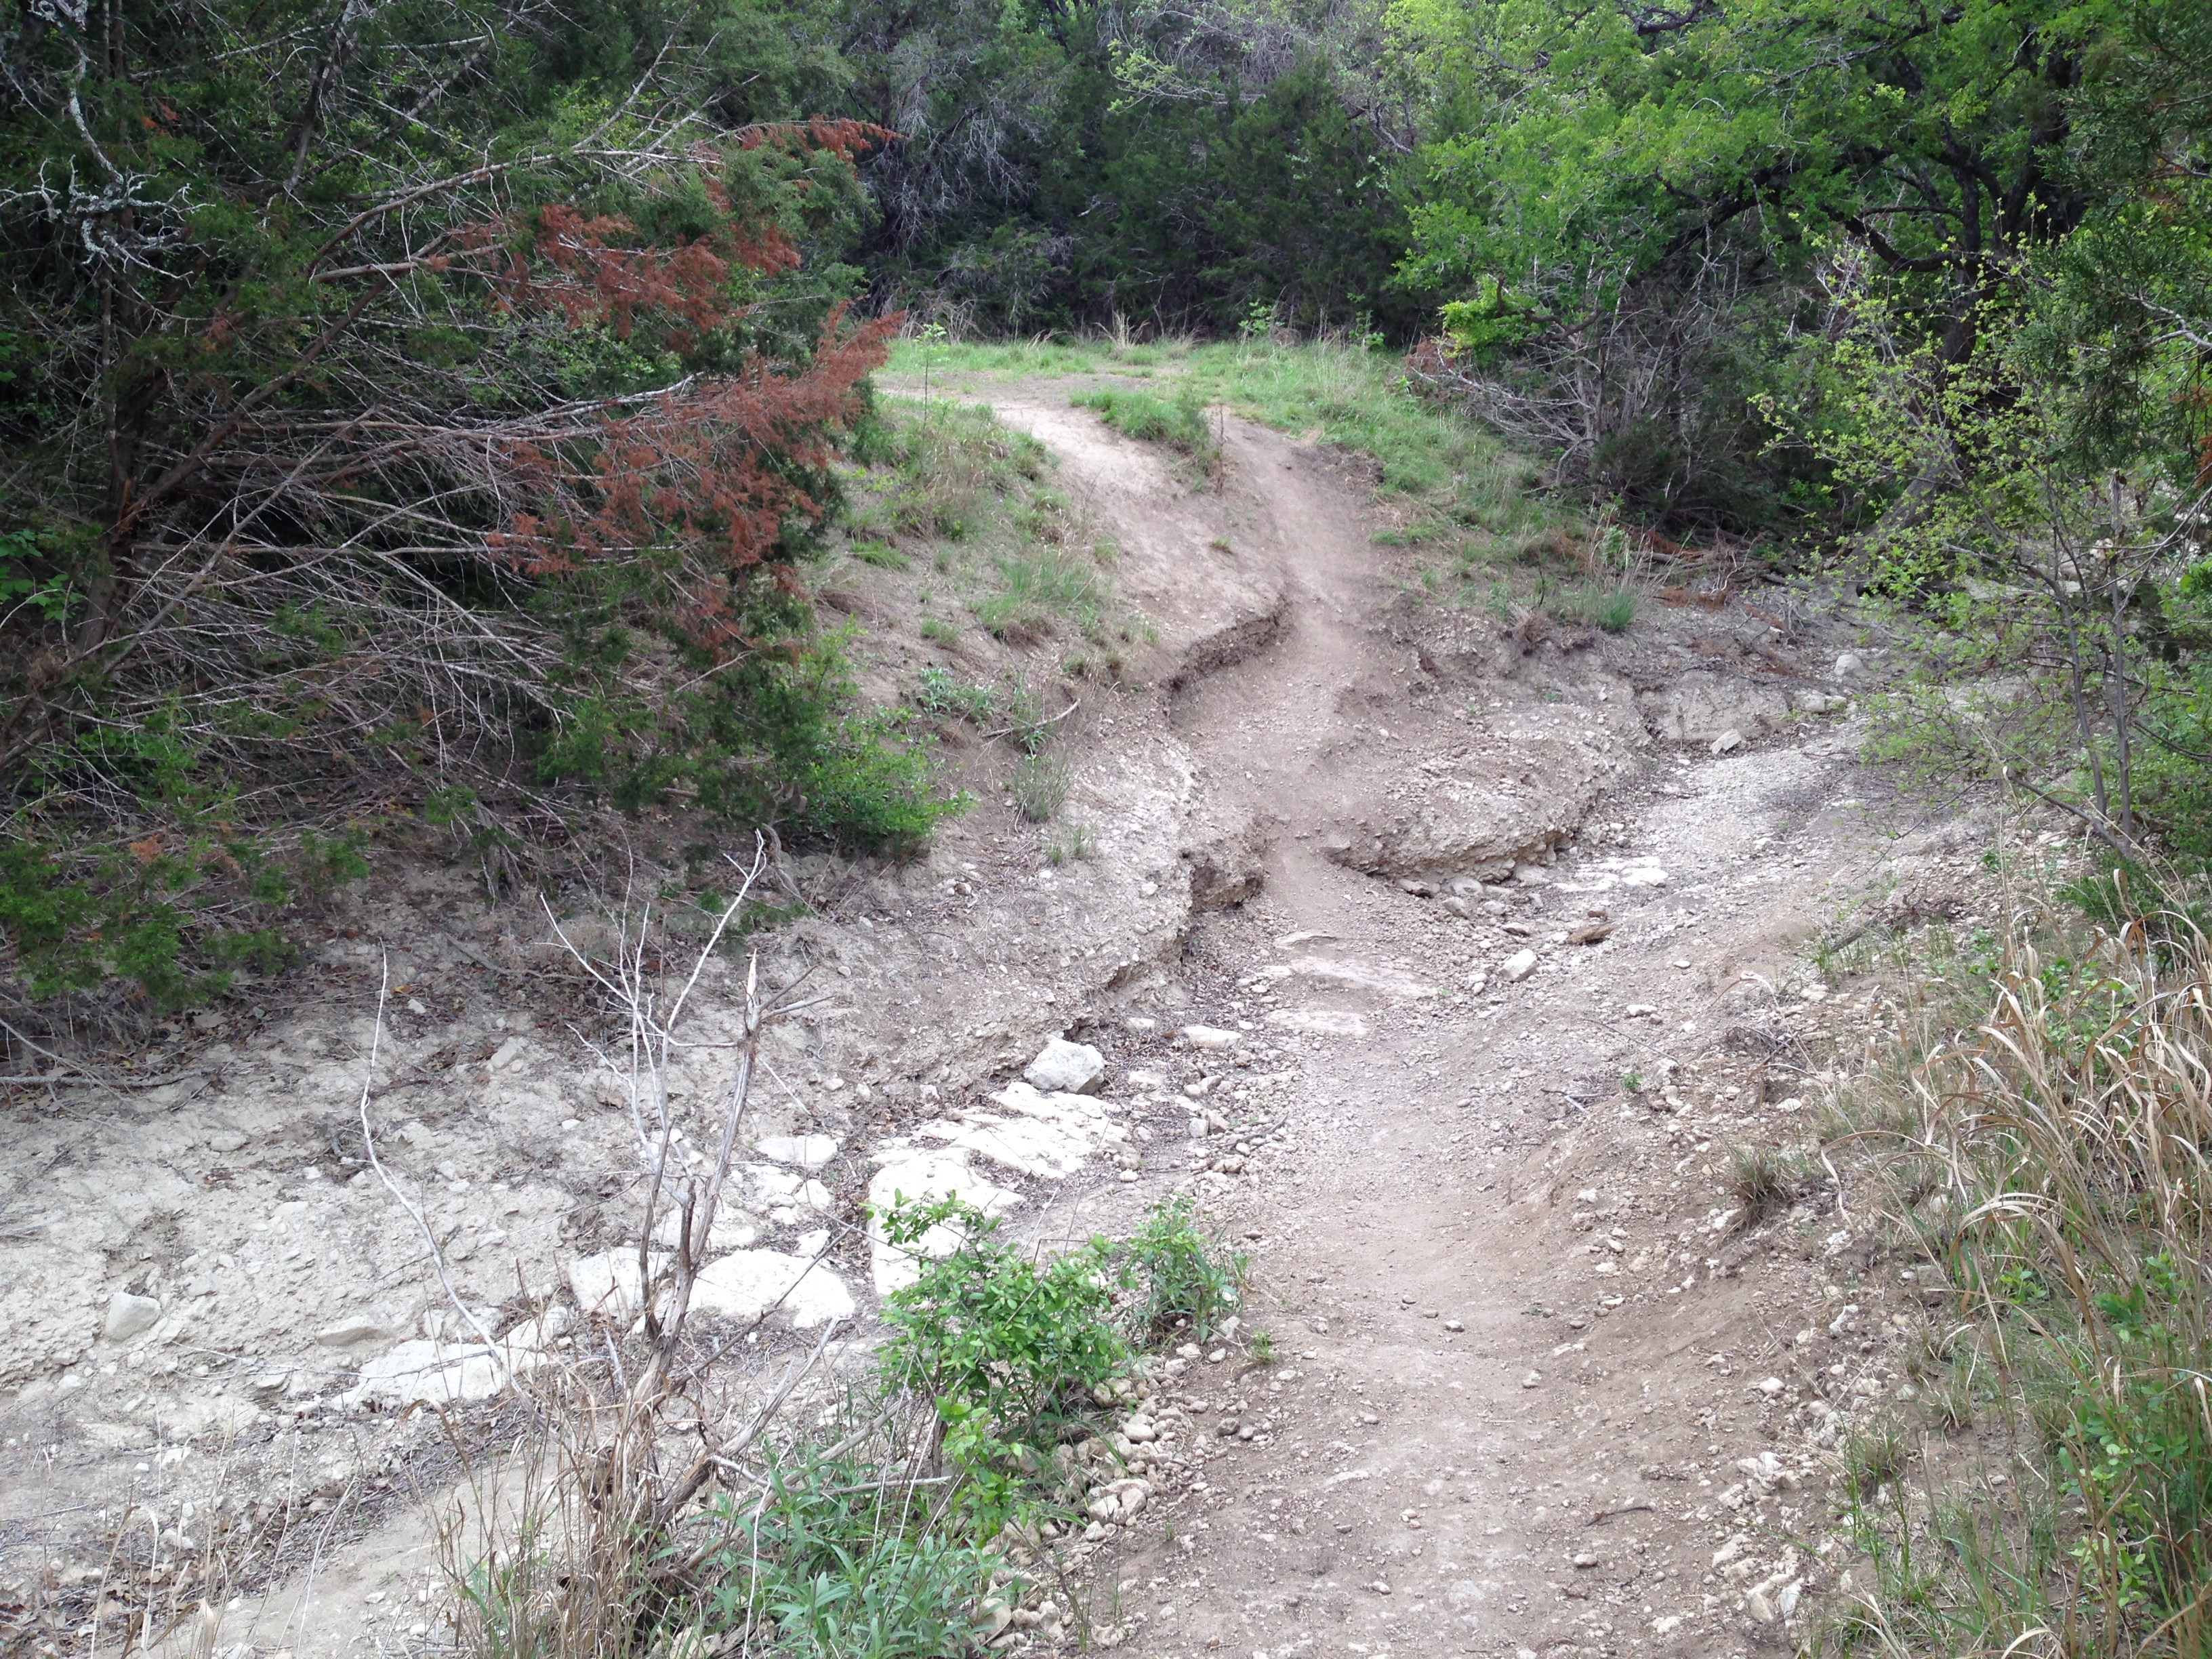 The metropolitan park trail crosses Slaughter Creek with a short, steep, descent. It'll be awhile before I can ride it.